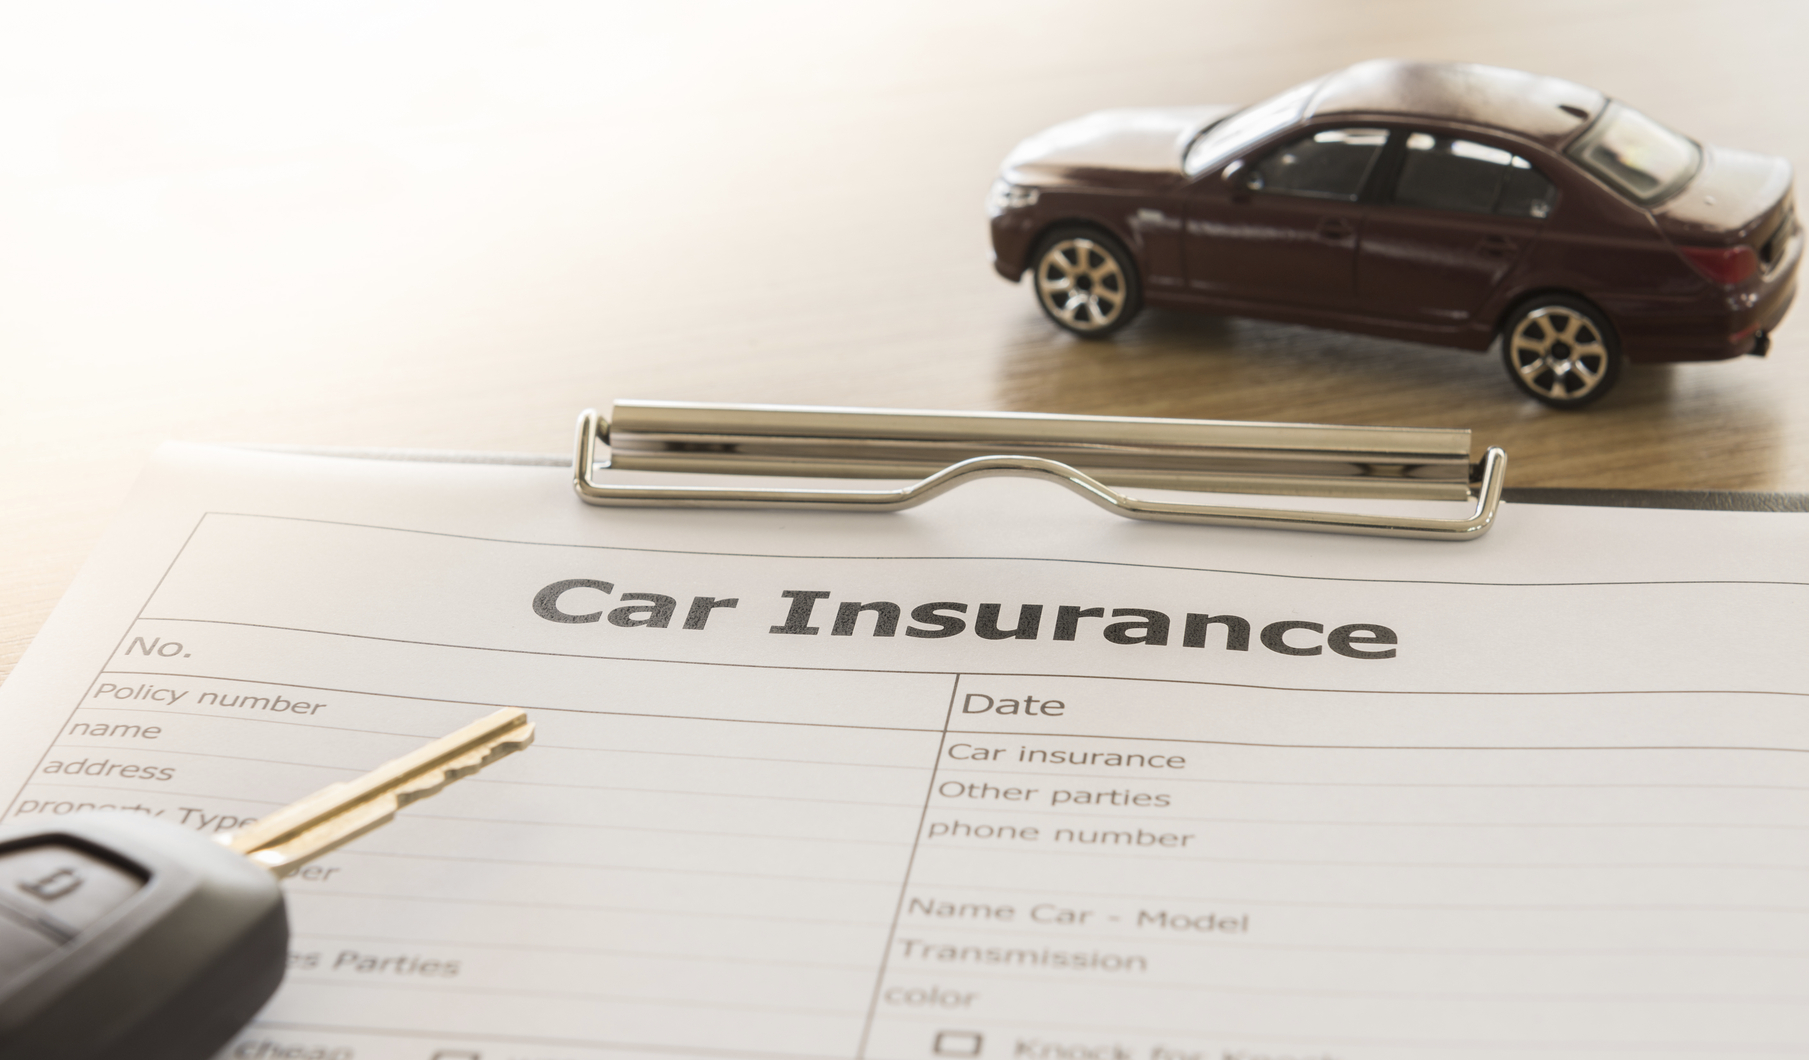 car insurance form and miniature car